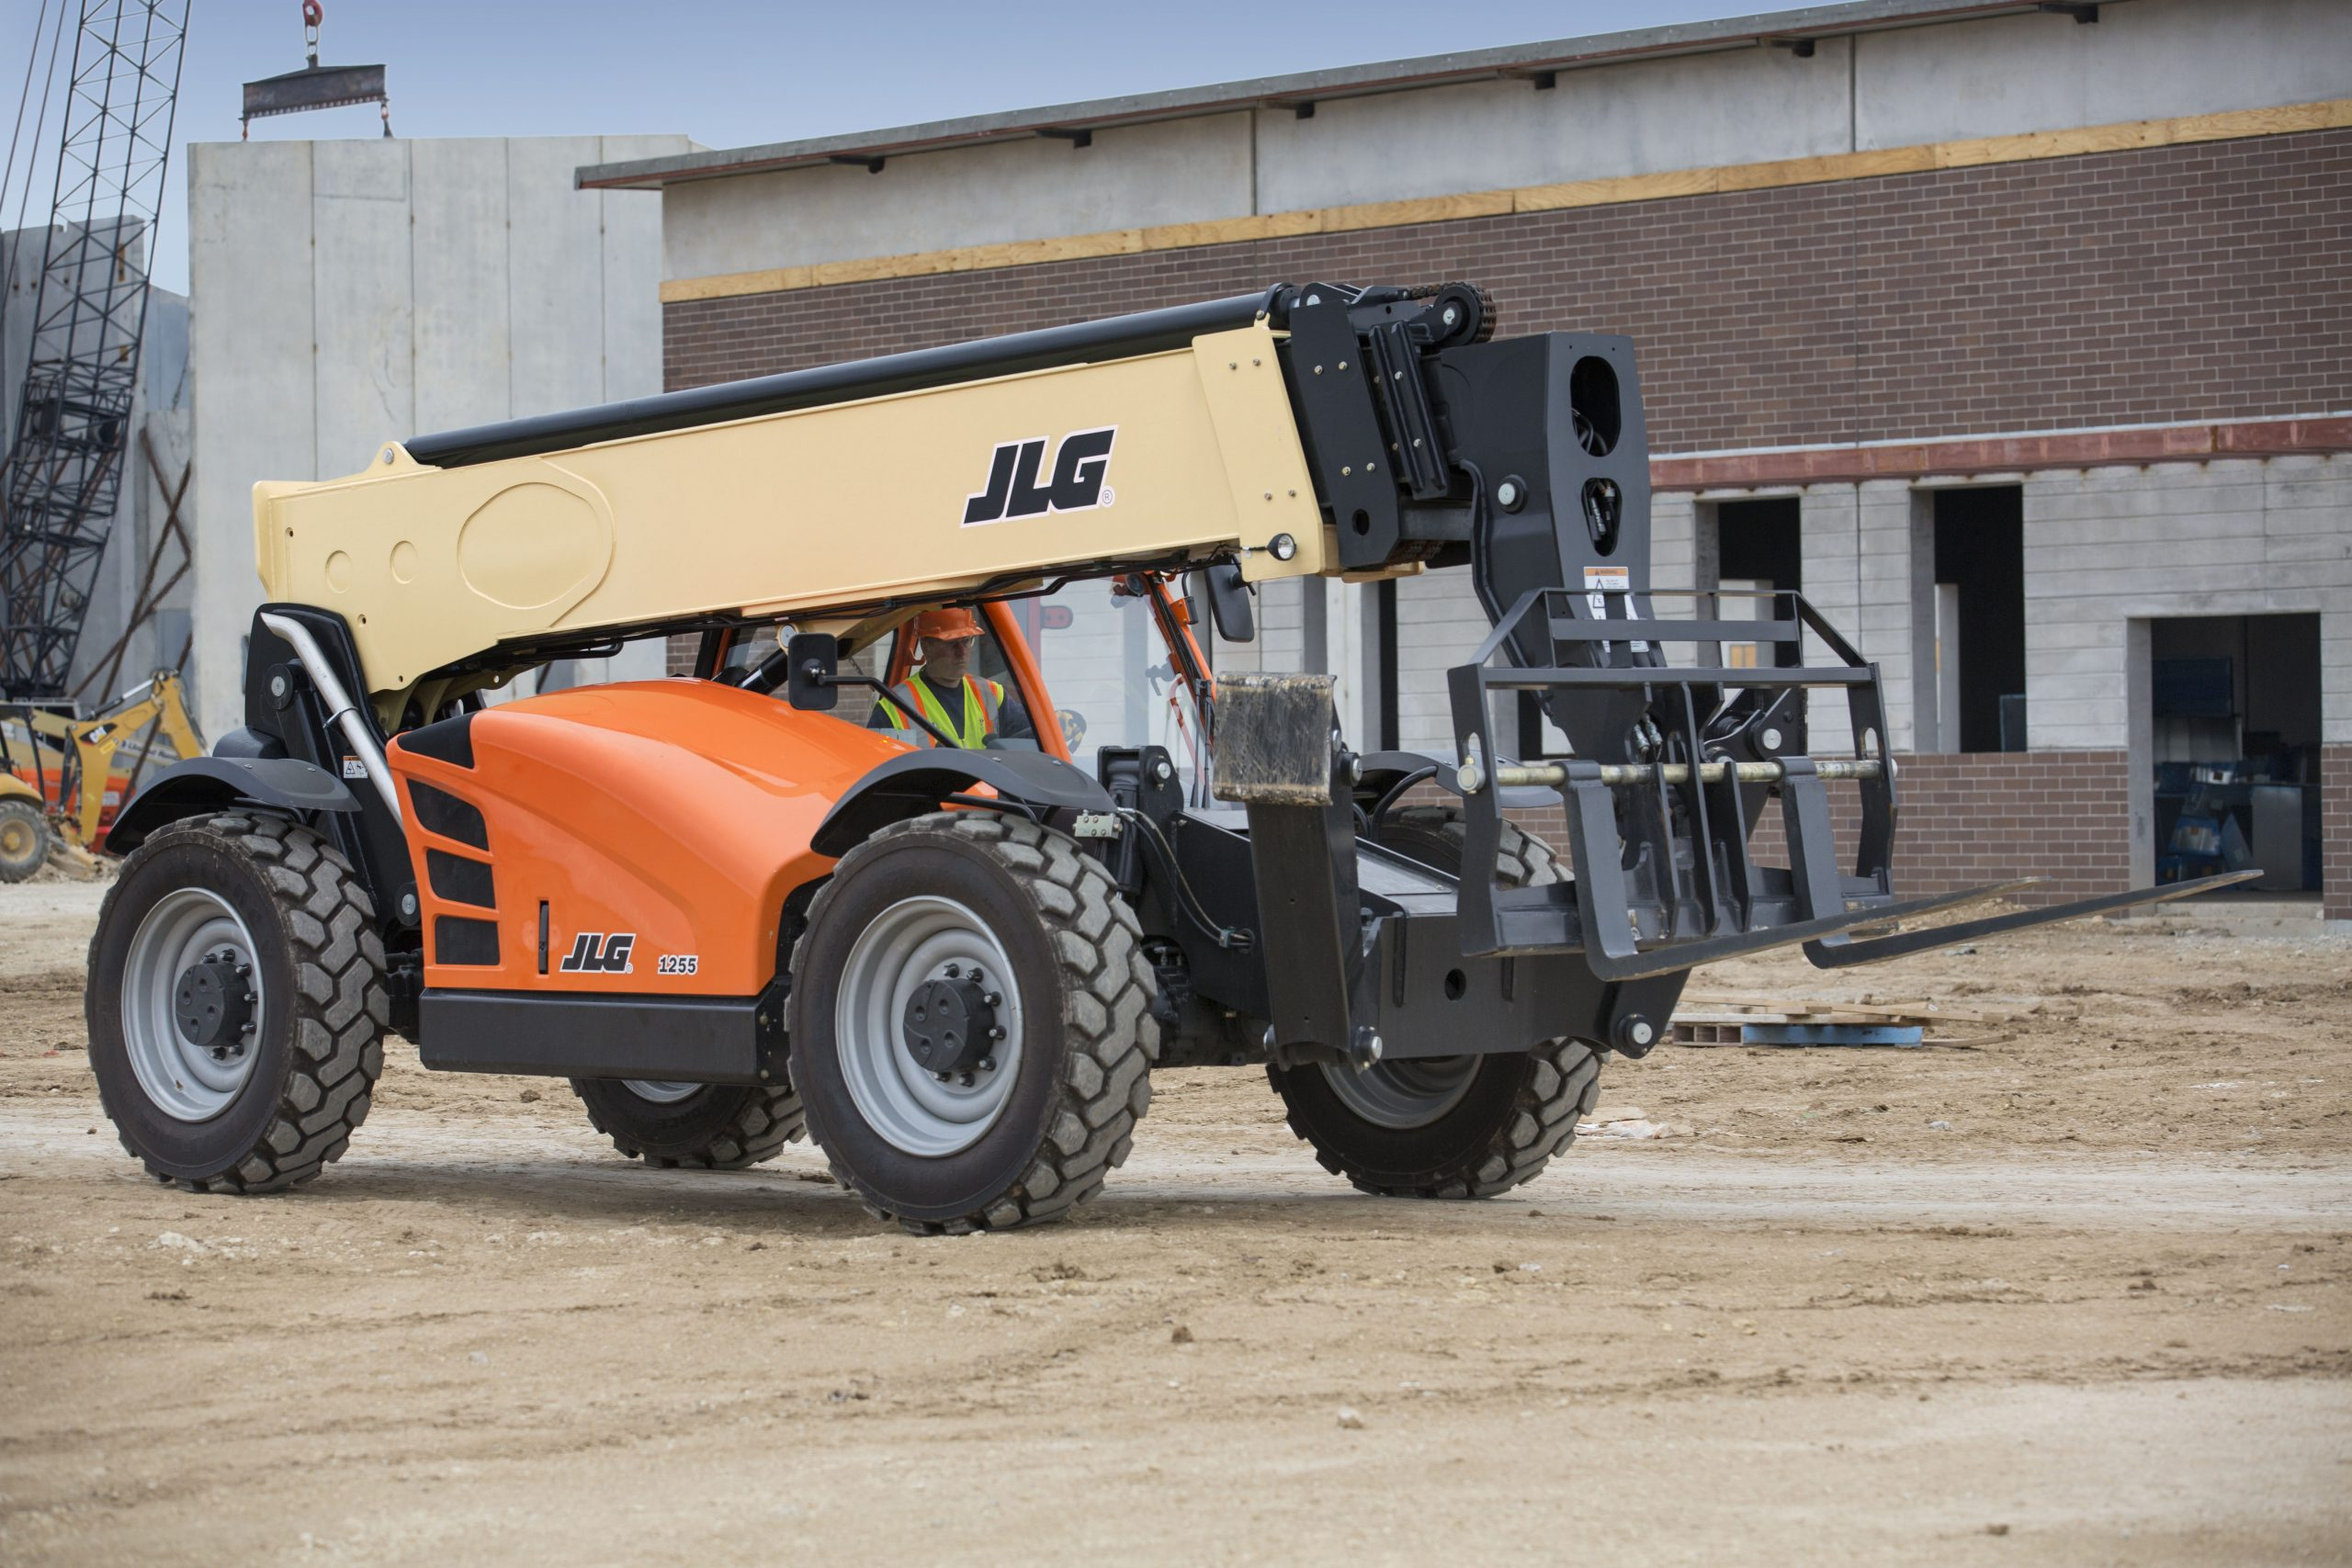 JLG Helping to Reduce Maintenance Costs for Owners